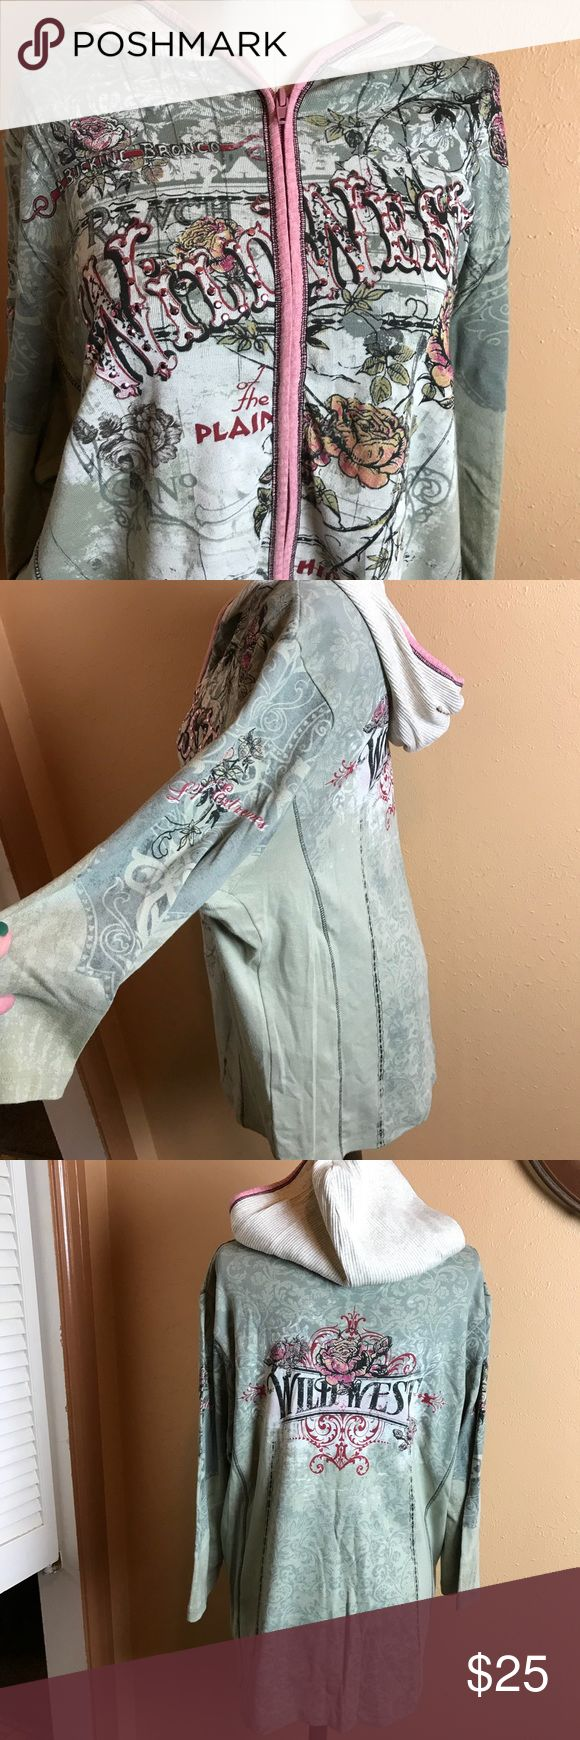 """➕ Vanilla Sugar Women's Top 1X Zip Up Hoodie EUC! Worn once!! Very cute pink and olive Zip up with cream colored hoodie. Great graphics! Check out the pictures! Metal studs on front for some bling! Chest 25"""", Length 27"""", Sleeve 18"""". Vanilla Sugar Tops Sweatshirts & Hoodies"""